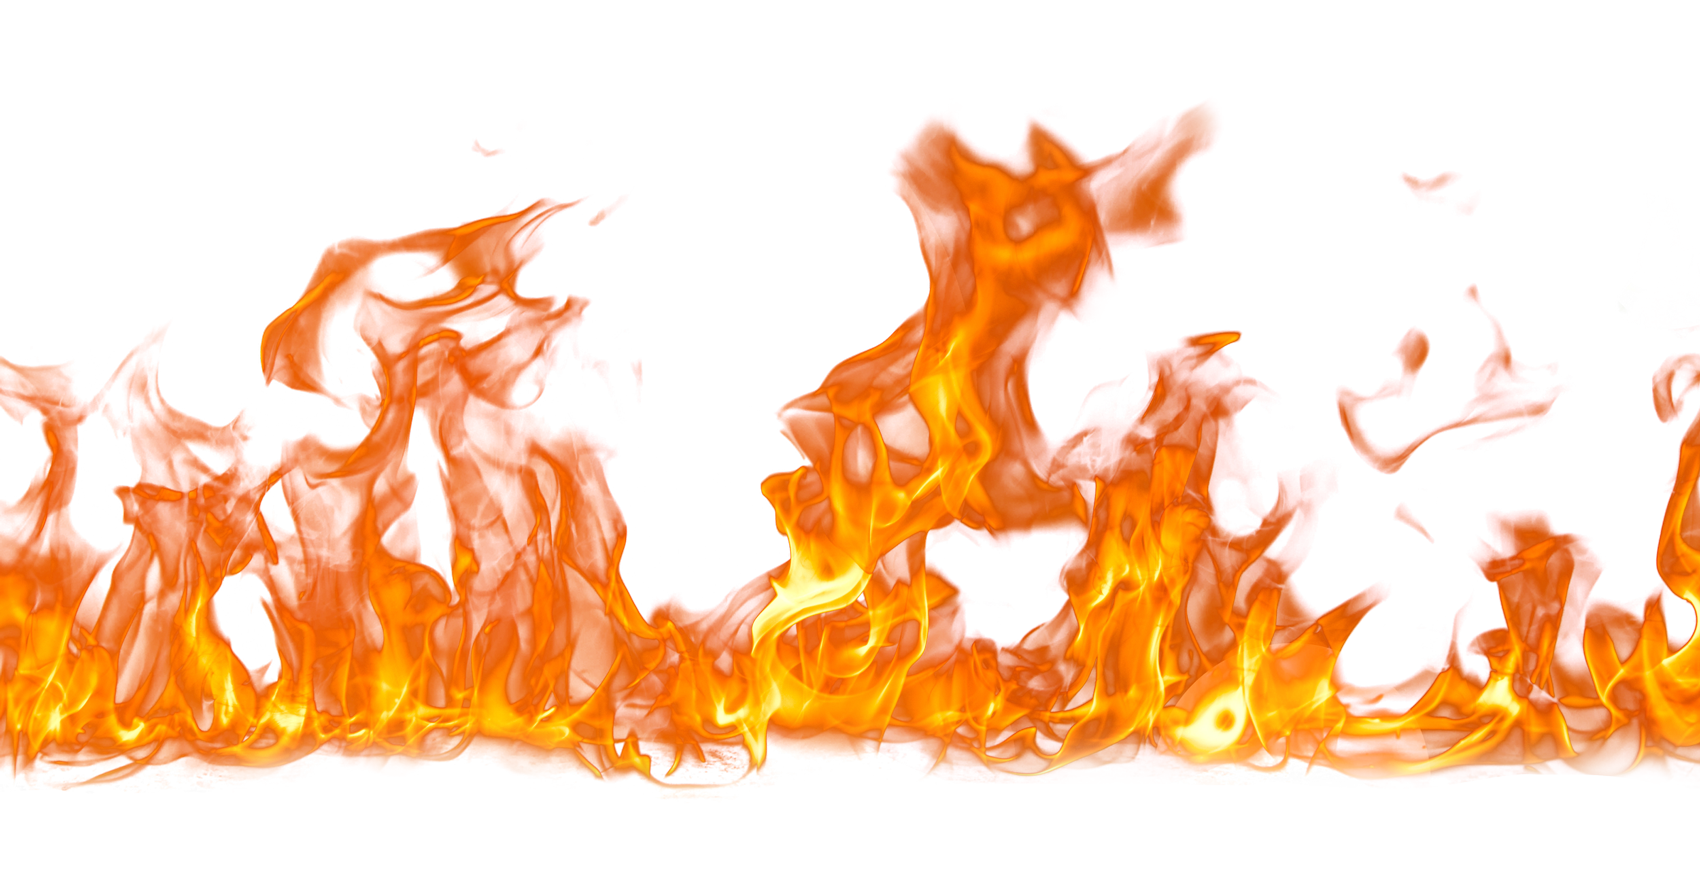 Fuego png. Fire transparent images all